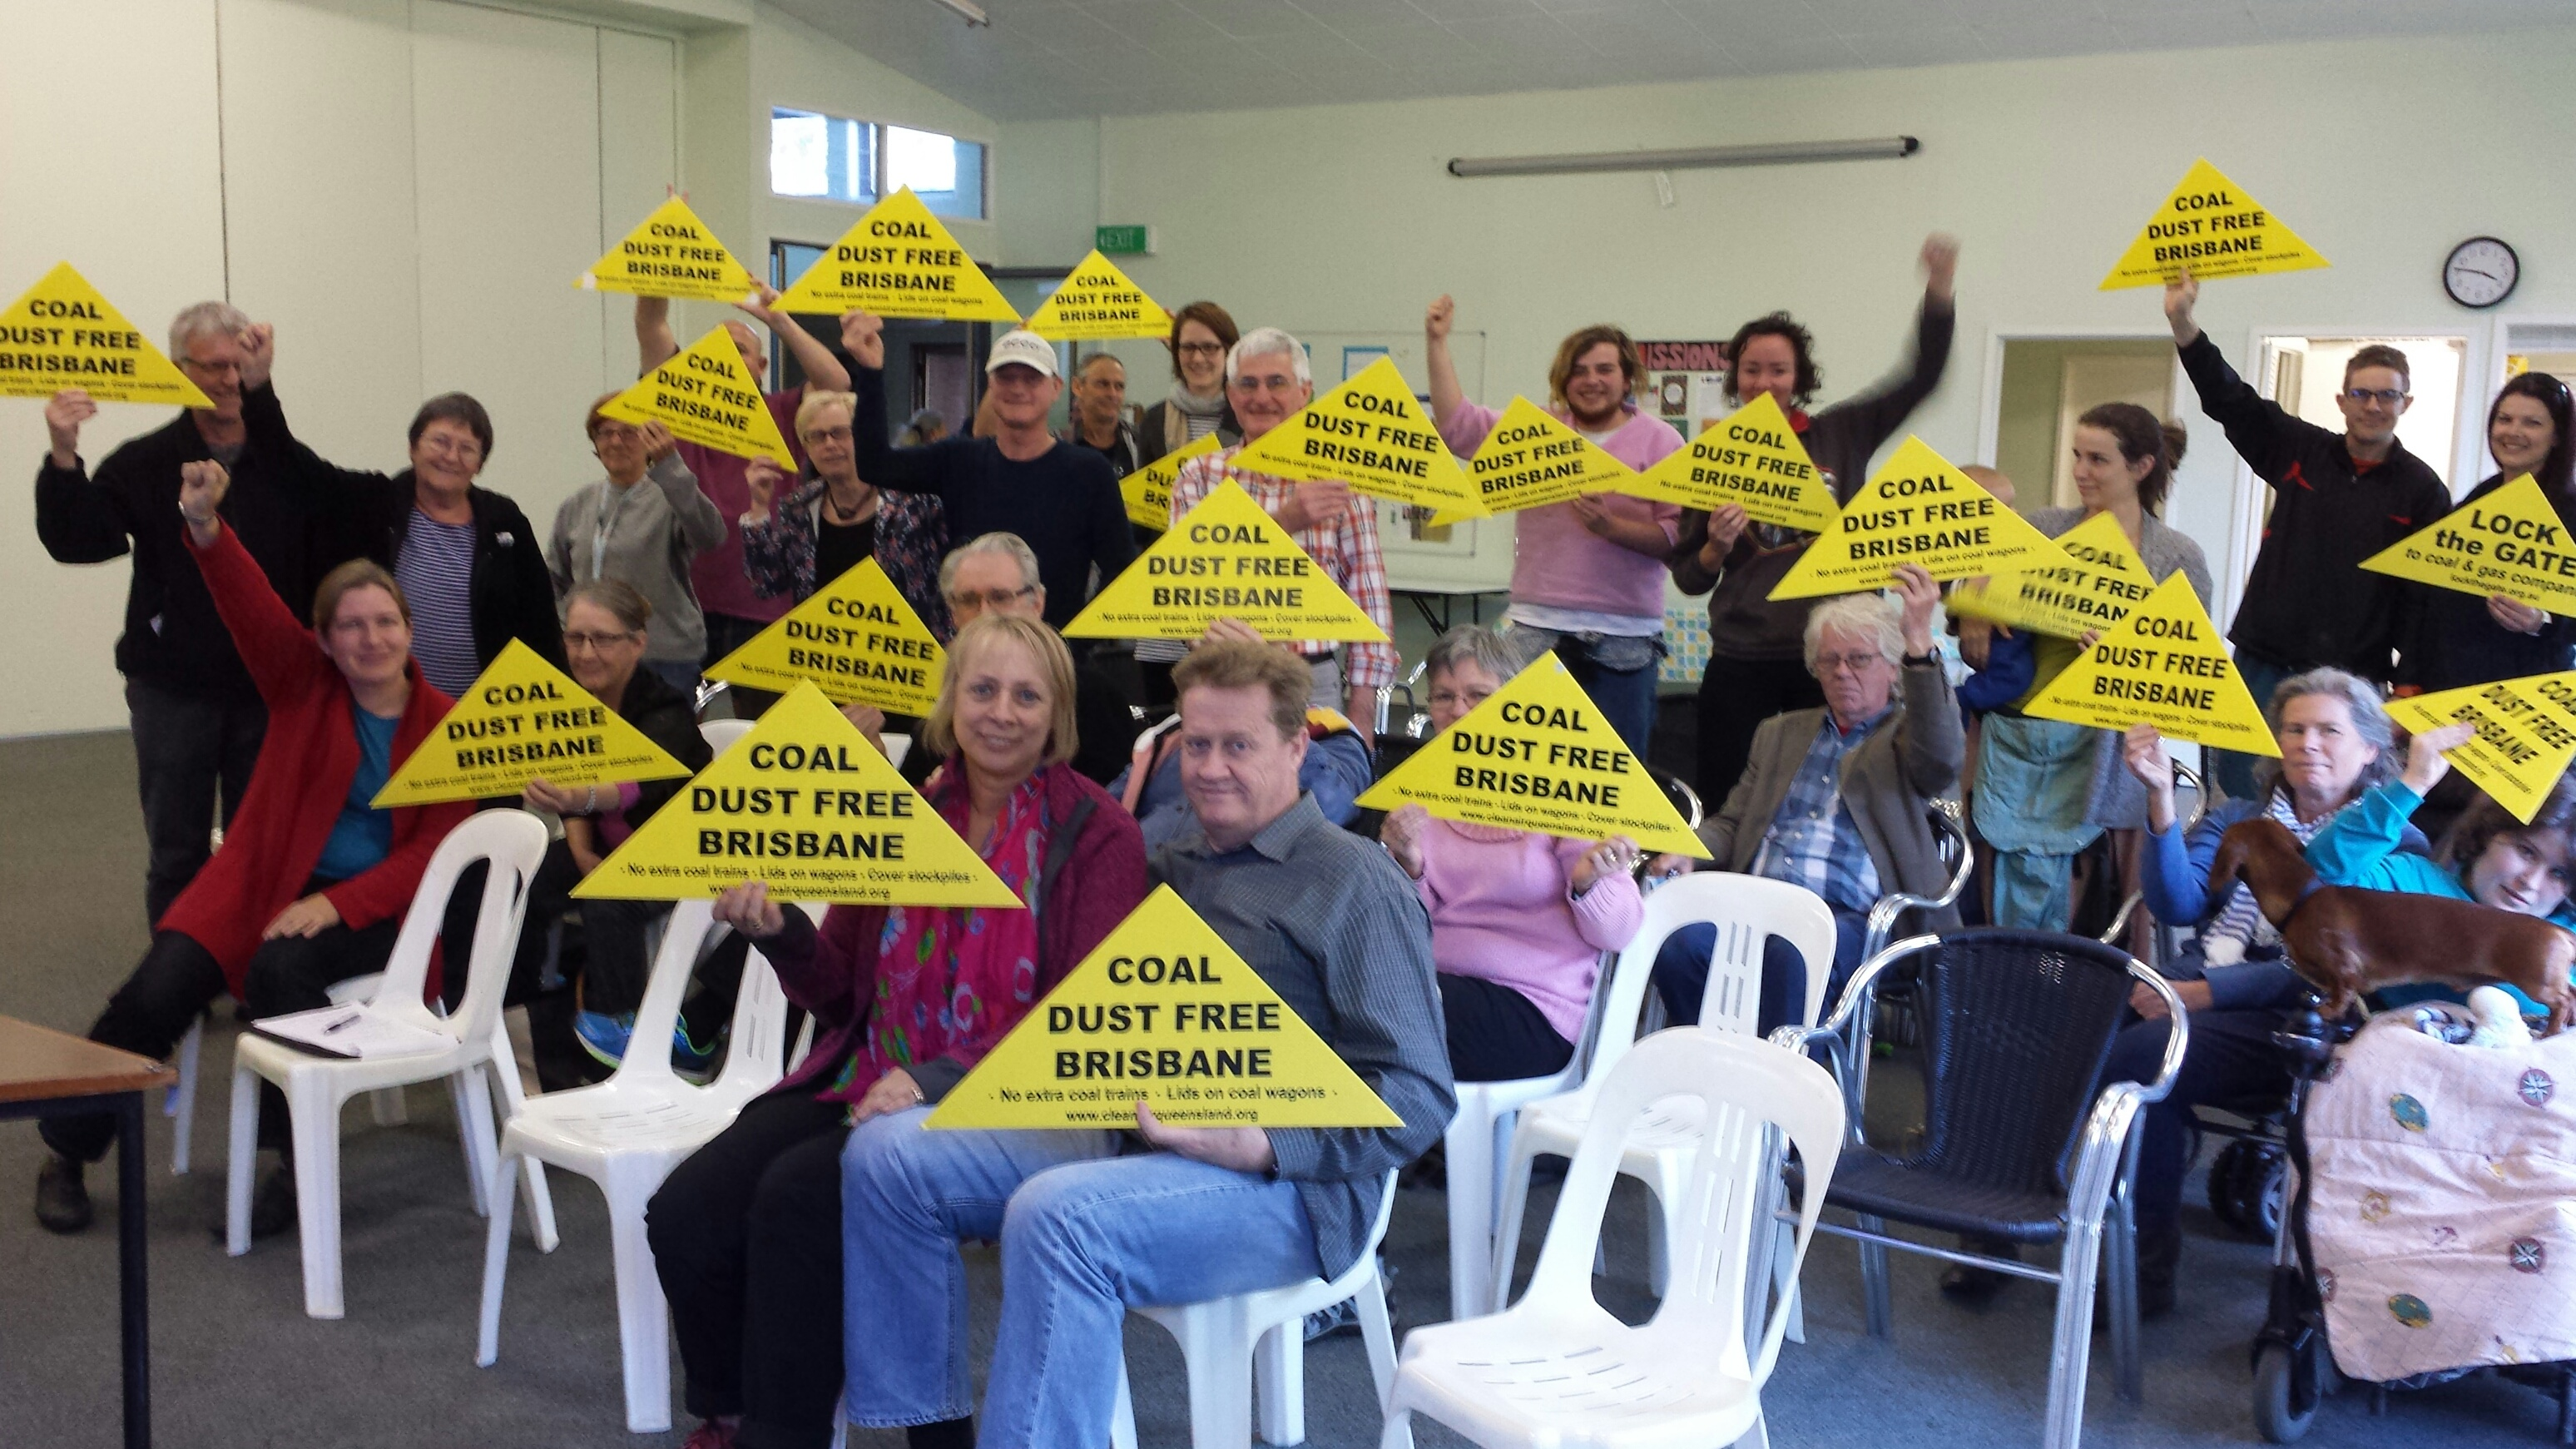 Fairfield residents vote to go coal dust free